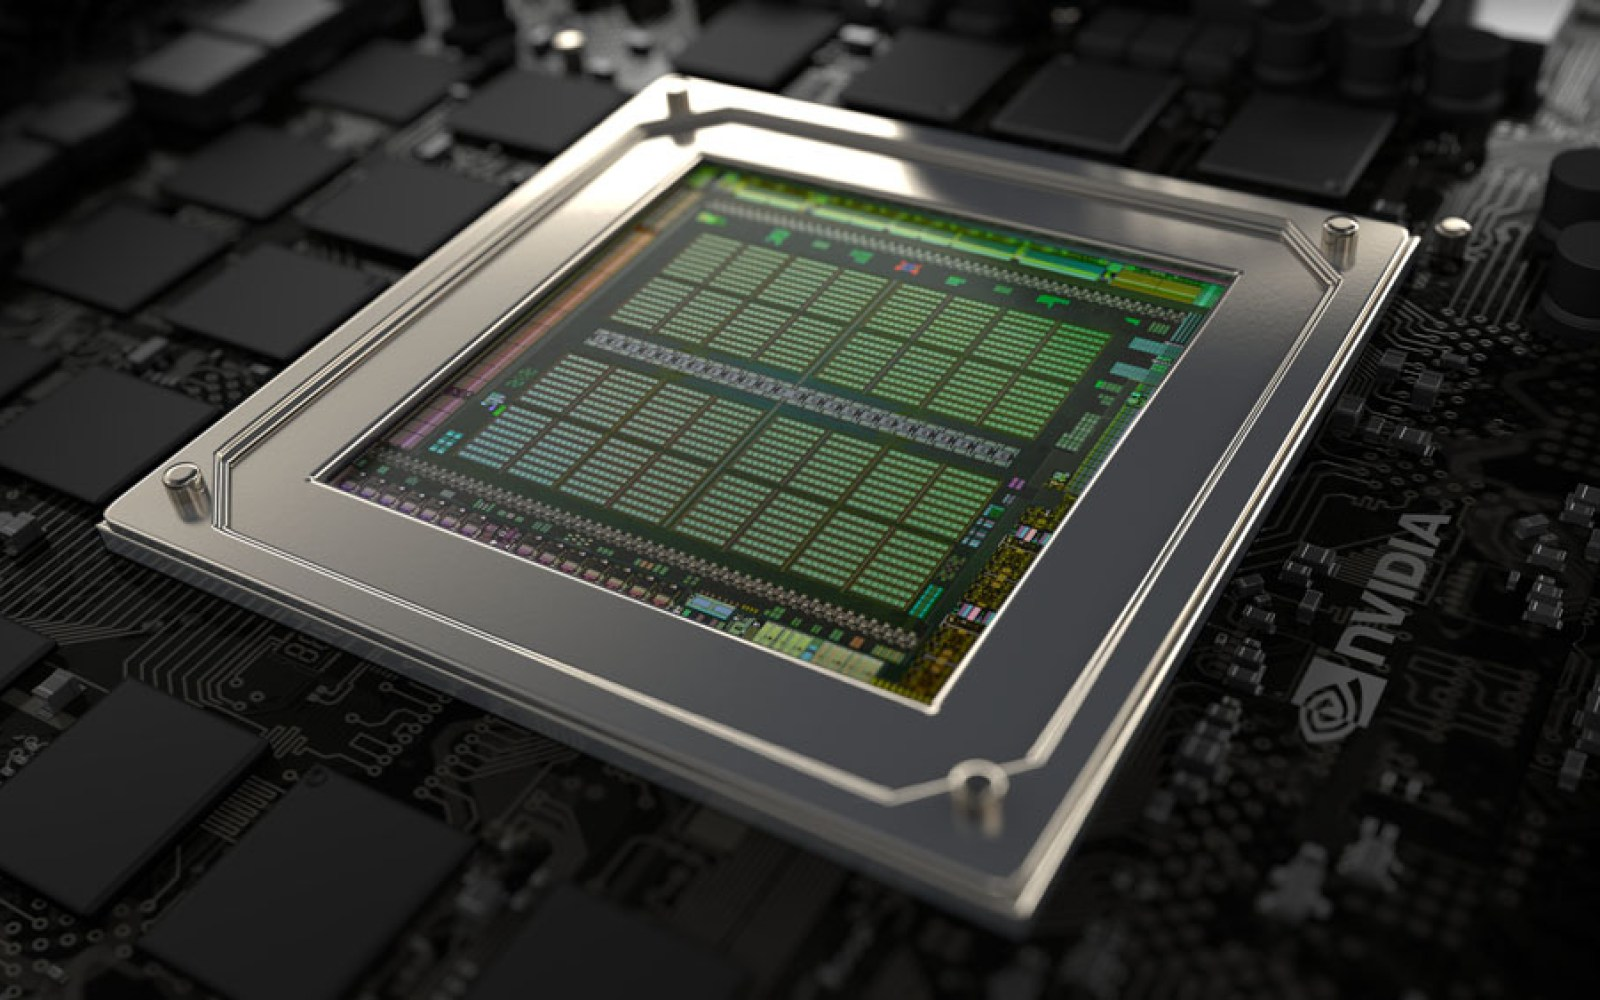 Malware hidden in Nvidia GPUs can infect Macs too, say developers behind proof of concept